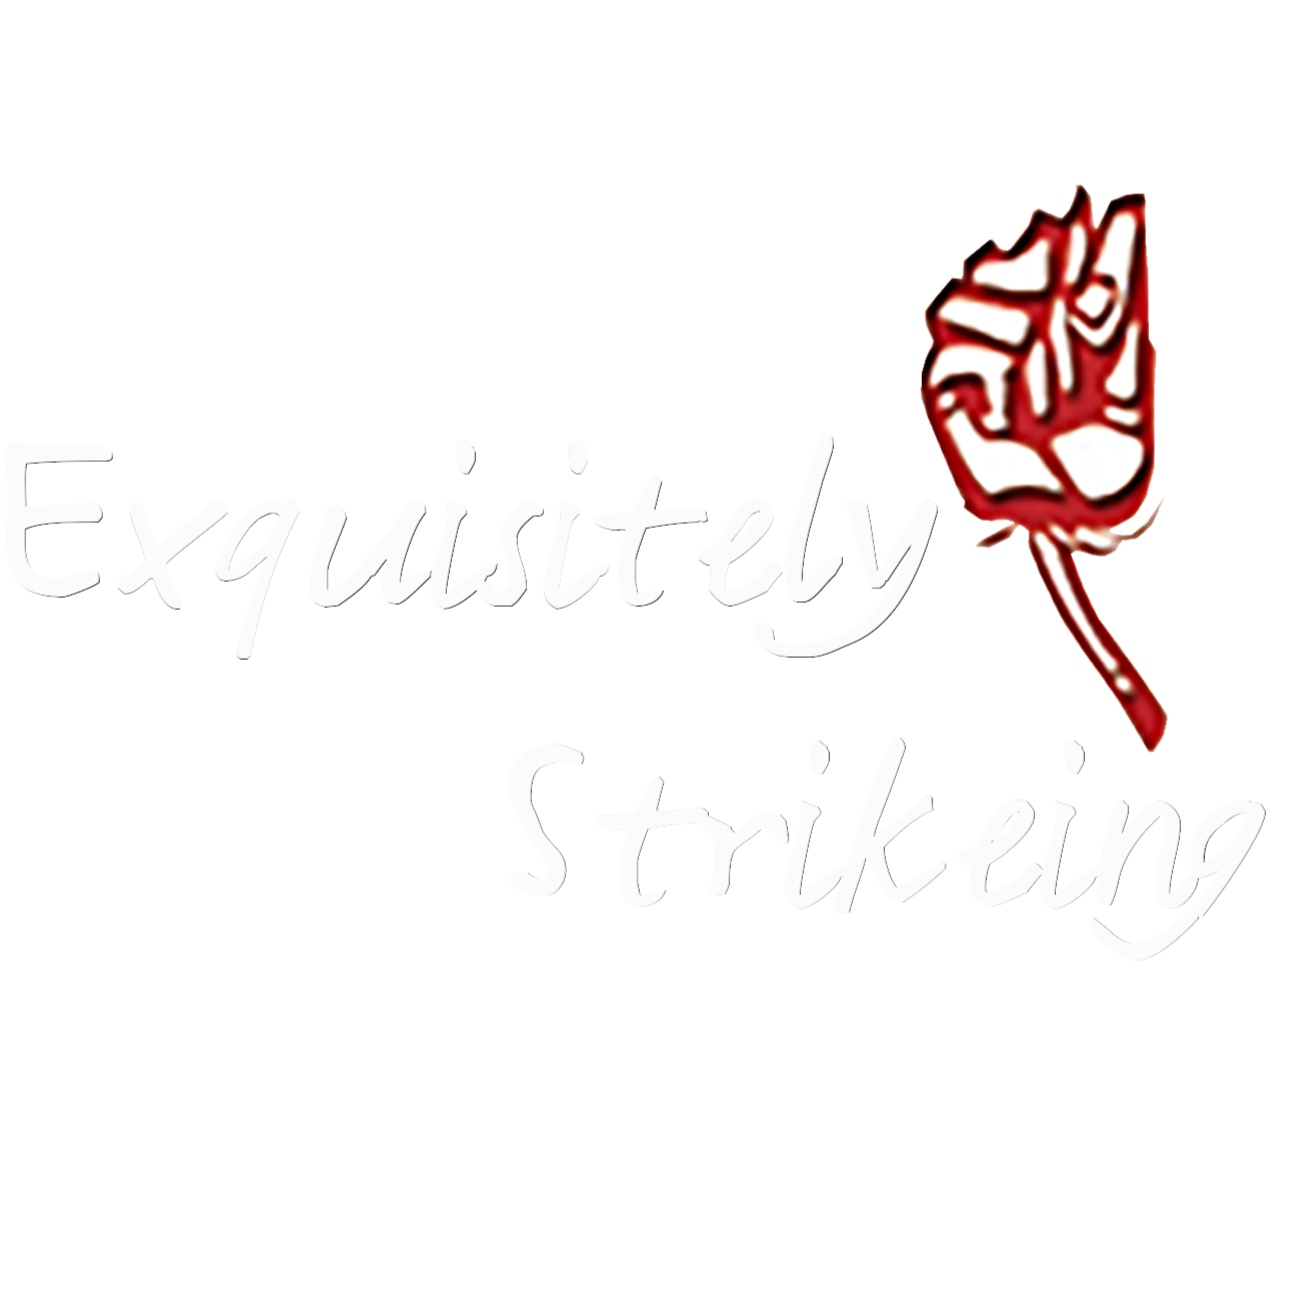 Exquisitely Strikeing